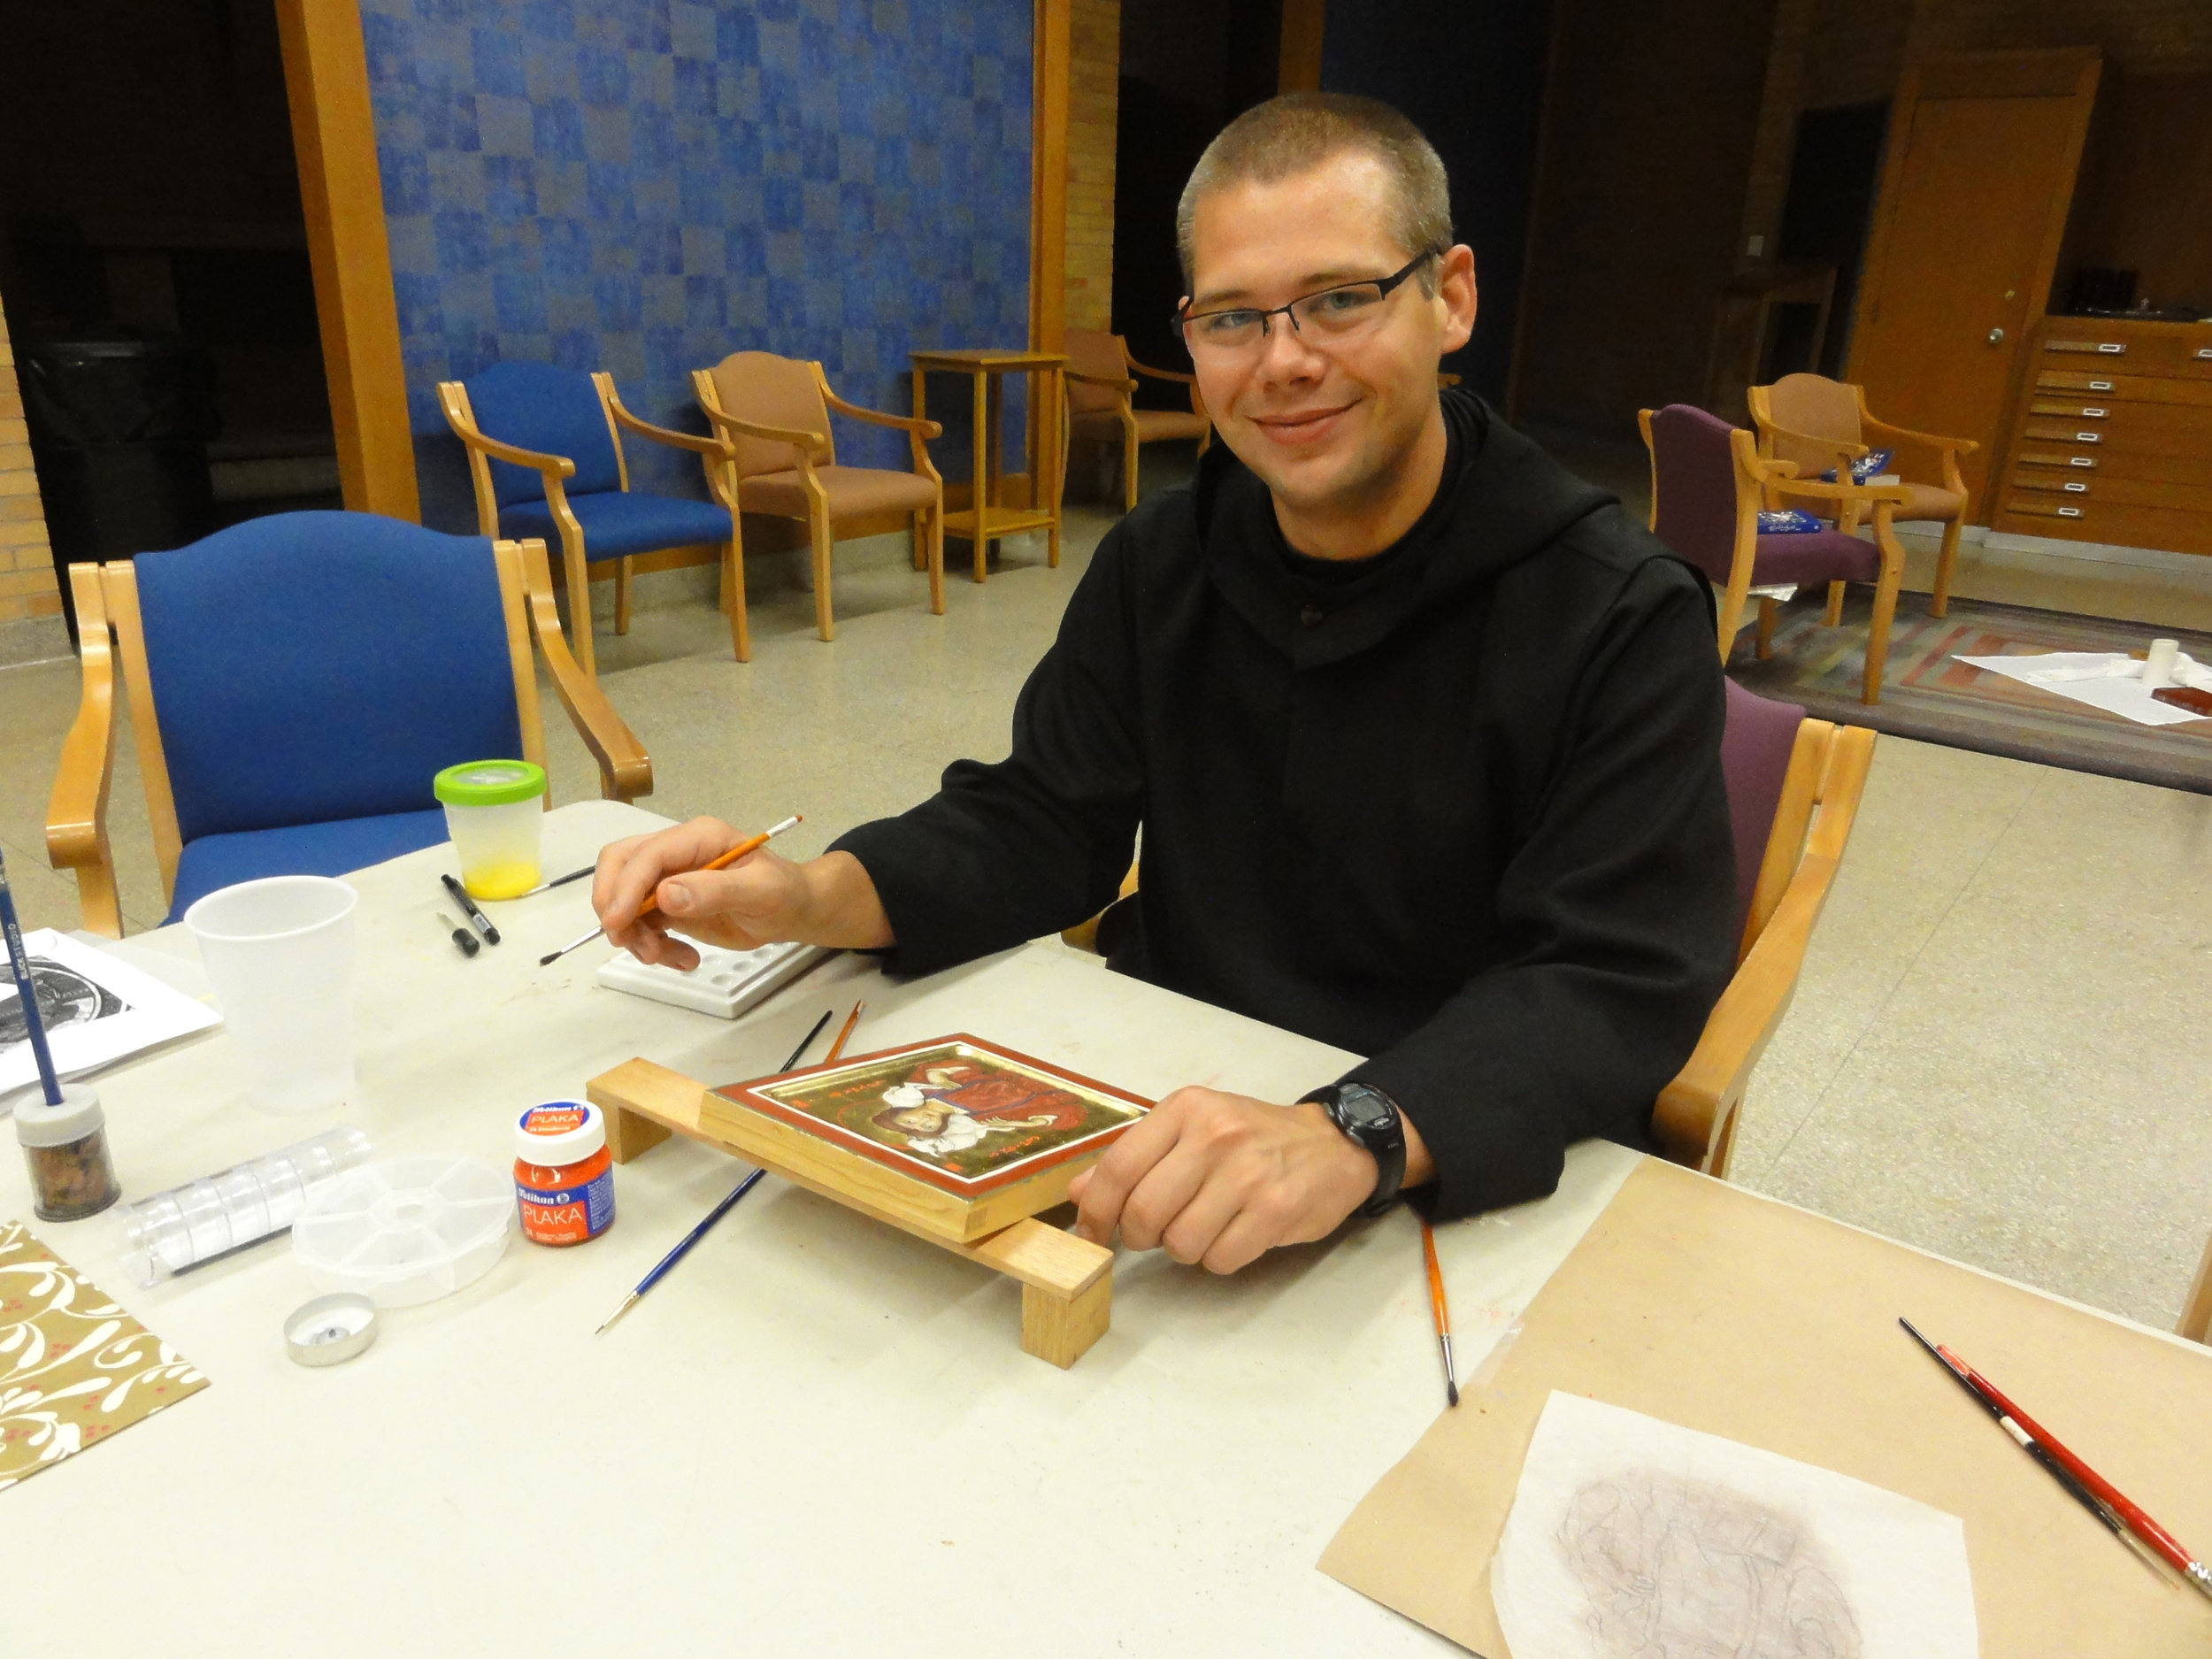 Br. Karel Soukup with the icon he wrote during the retreat